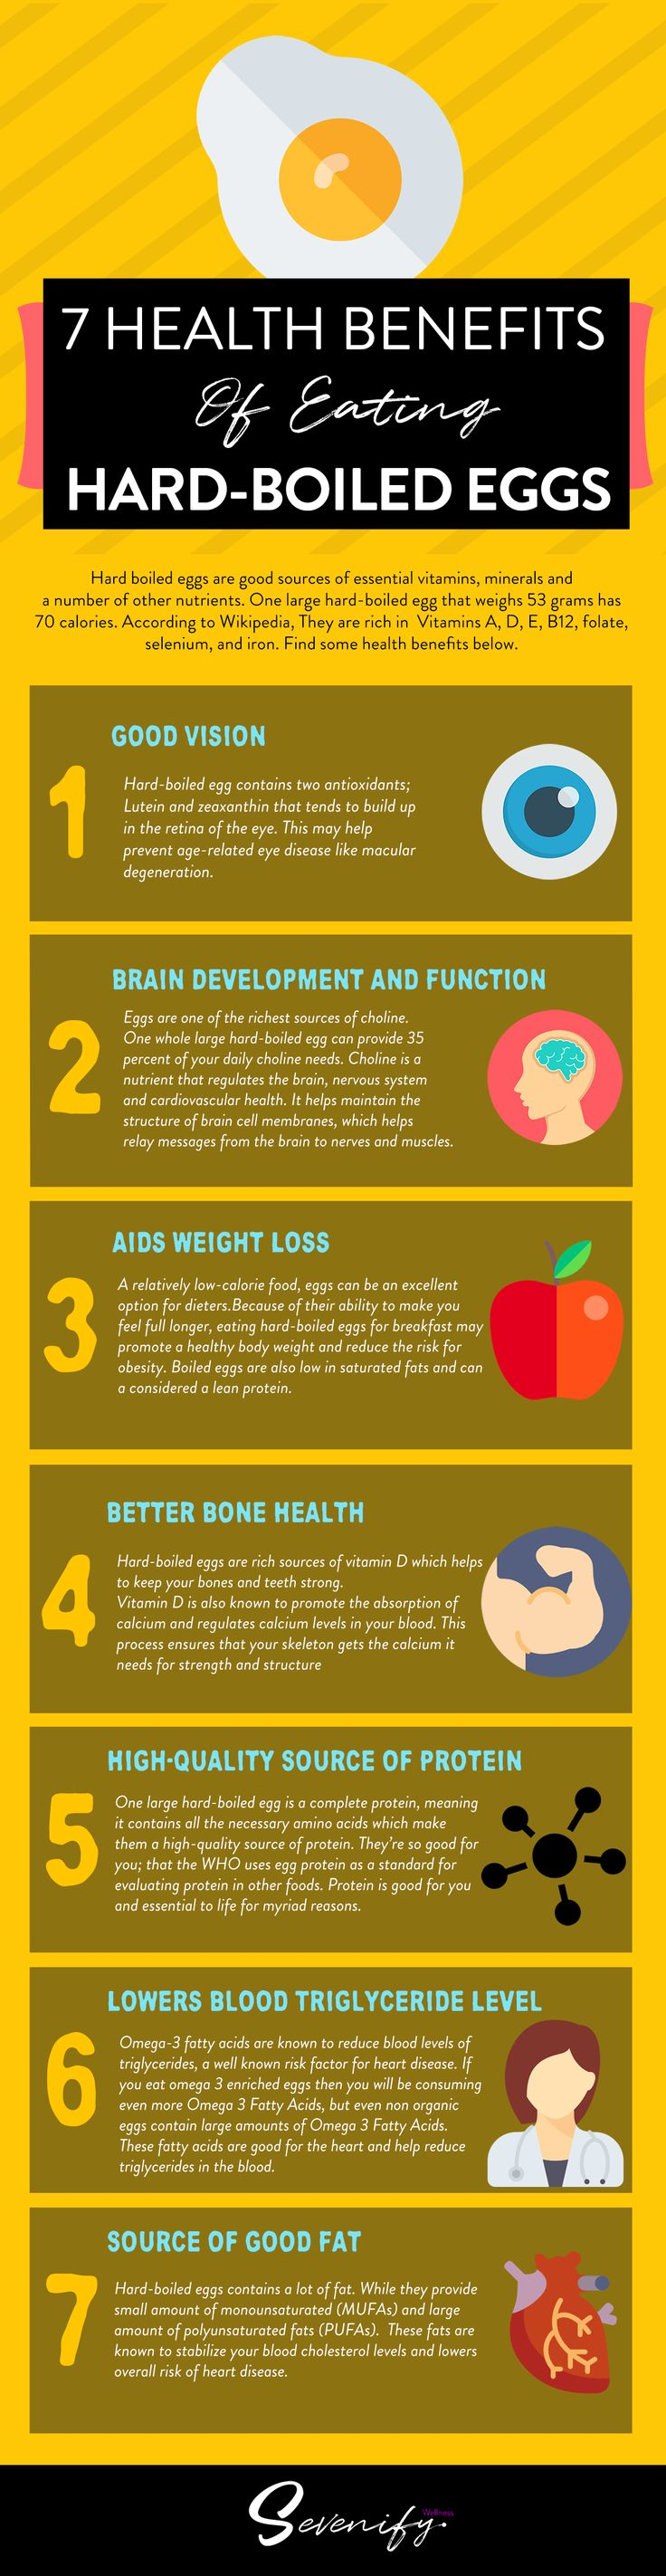 hard-boiled egg nutrition facts and benefits infographics